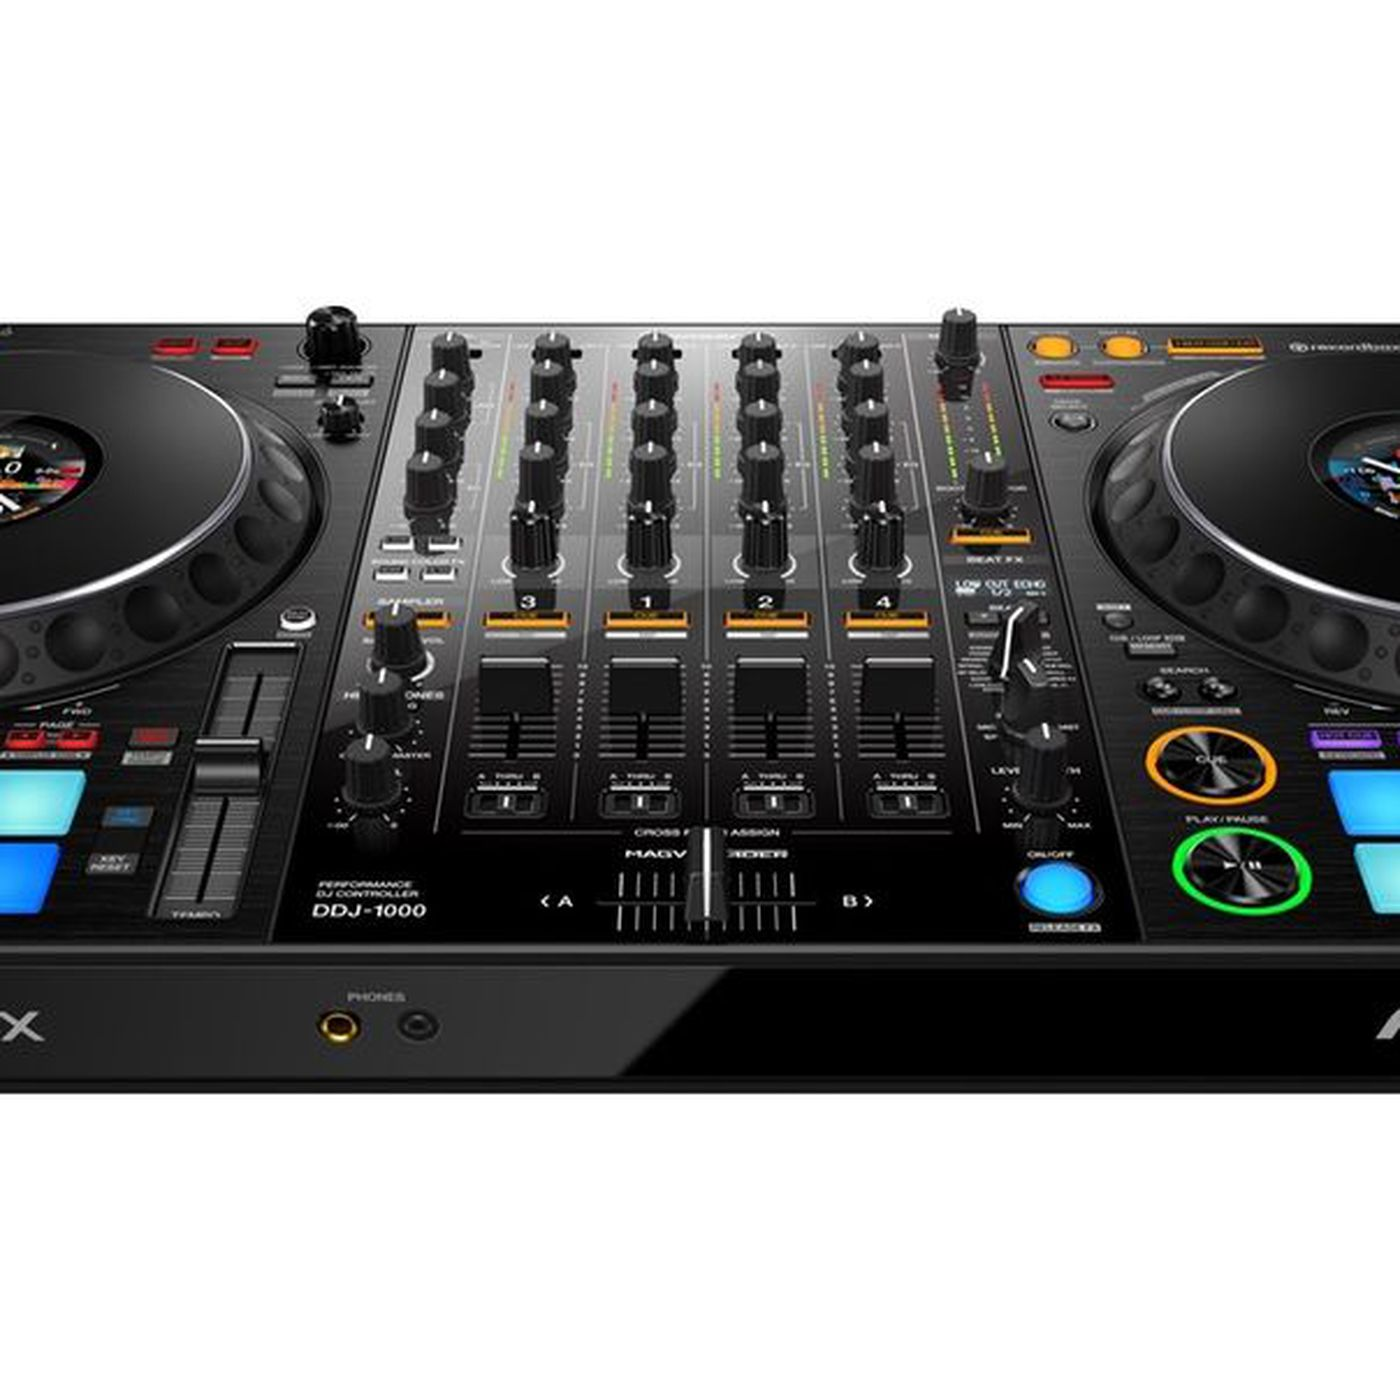 Pioneer's new DJ controller brings a club-style layout to a portable